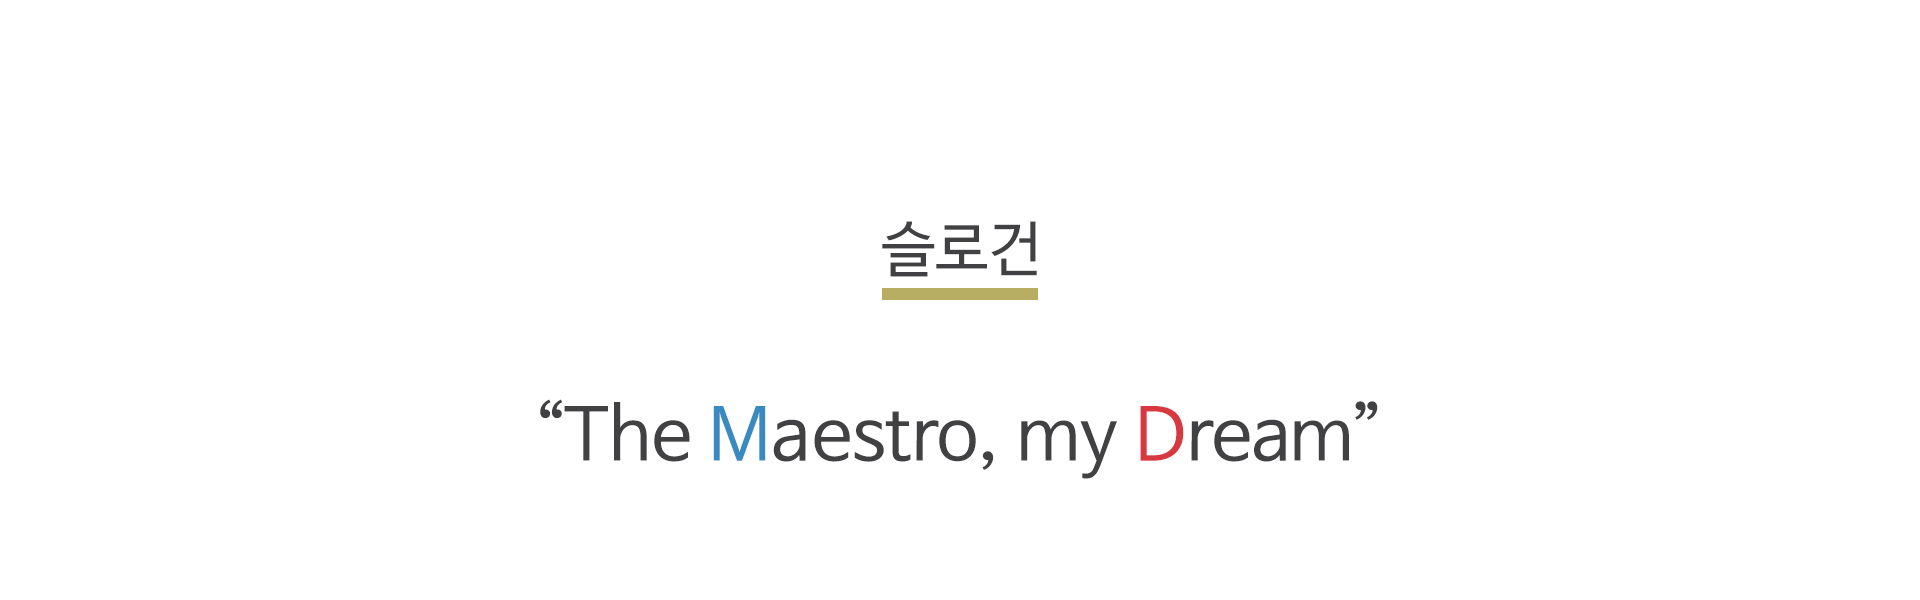 the maestro, my dream